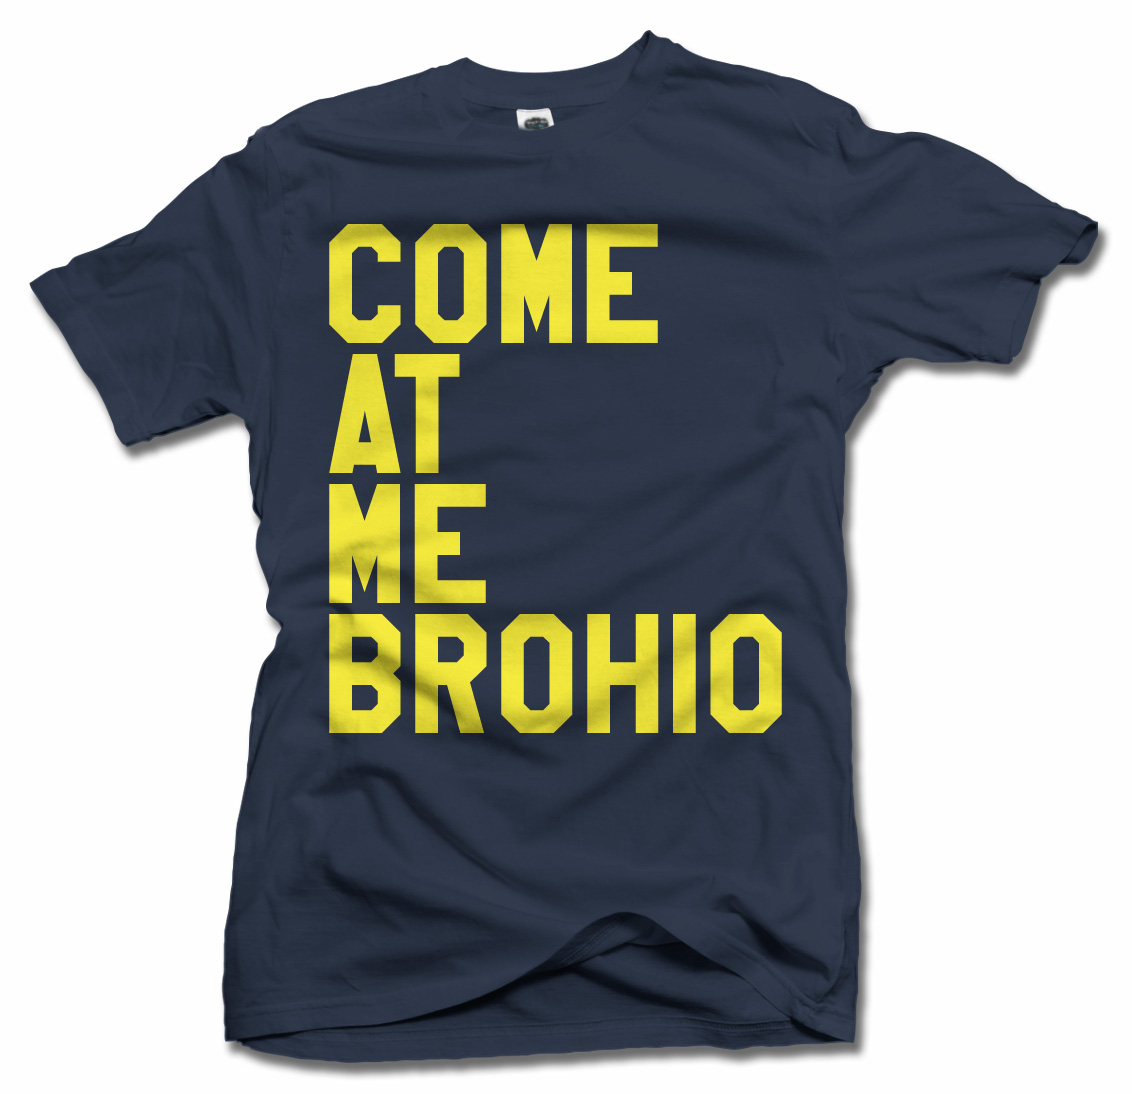 COME AT ME BROHIO FUNNY MICHIGAN T-SHIRT Model